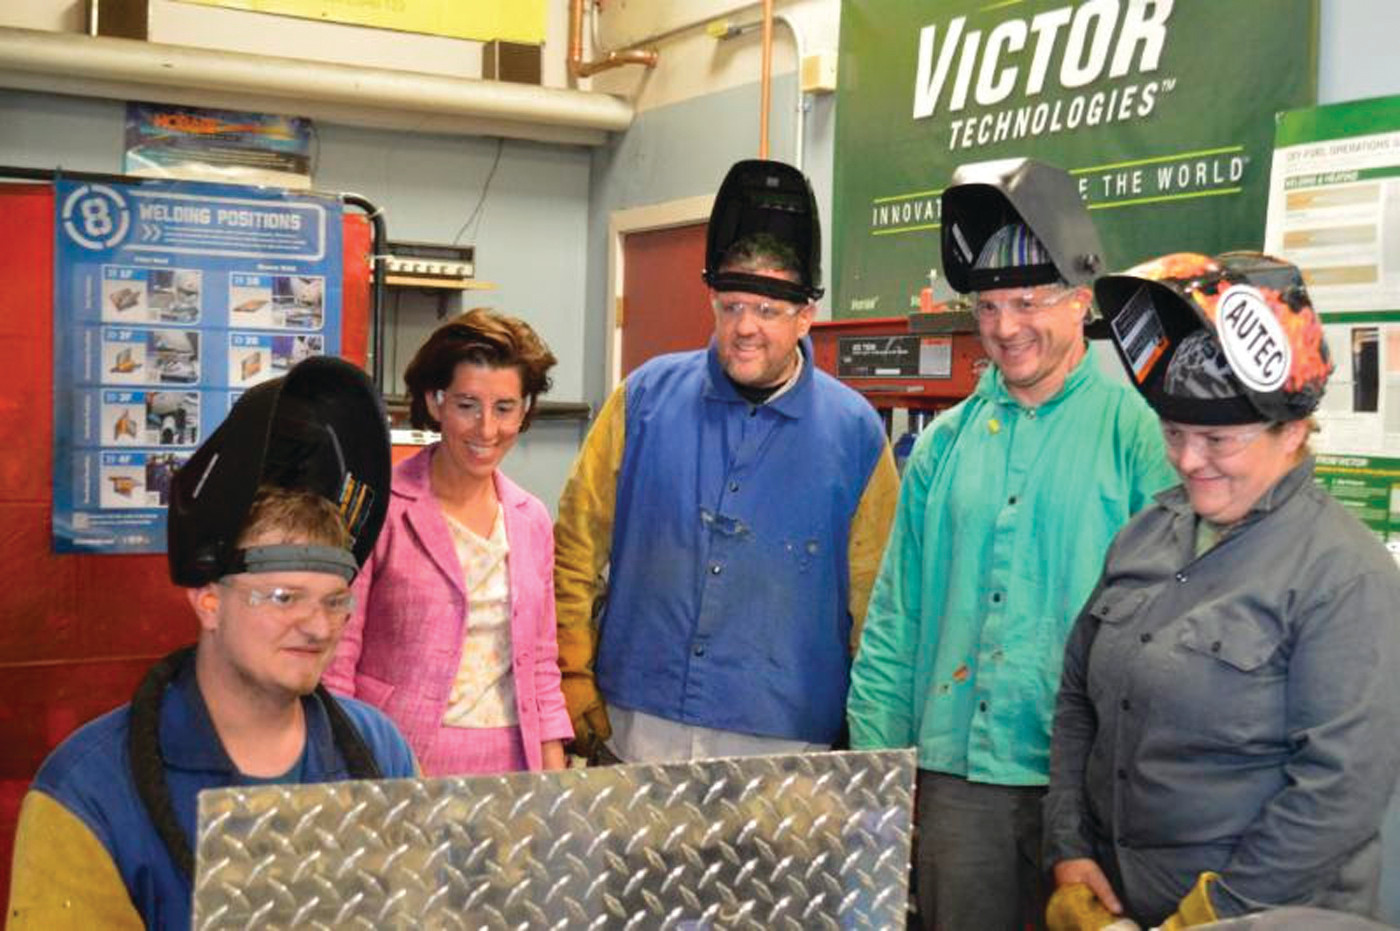 NEIT TOUR: After the unveiling of the new strategic workforce development plan, Governor Gina Raimondo toured New England Institute of Technology's welder program. Here, she watches several welding students at work.